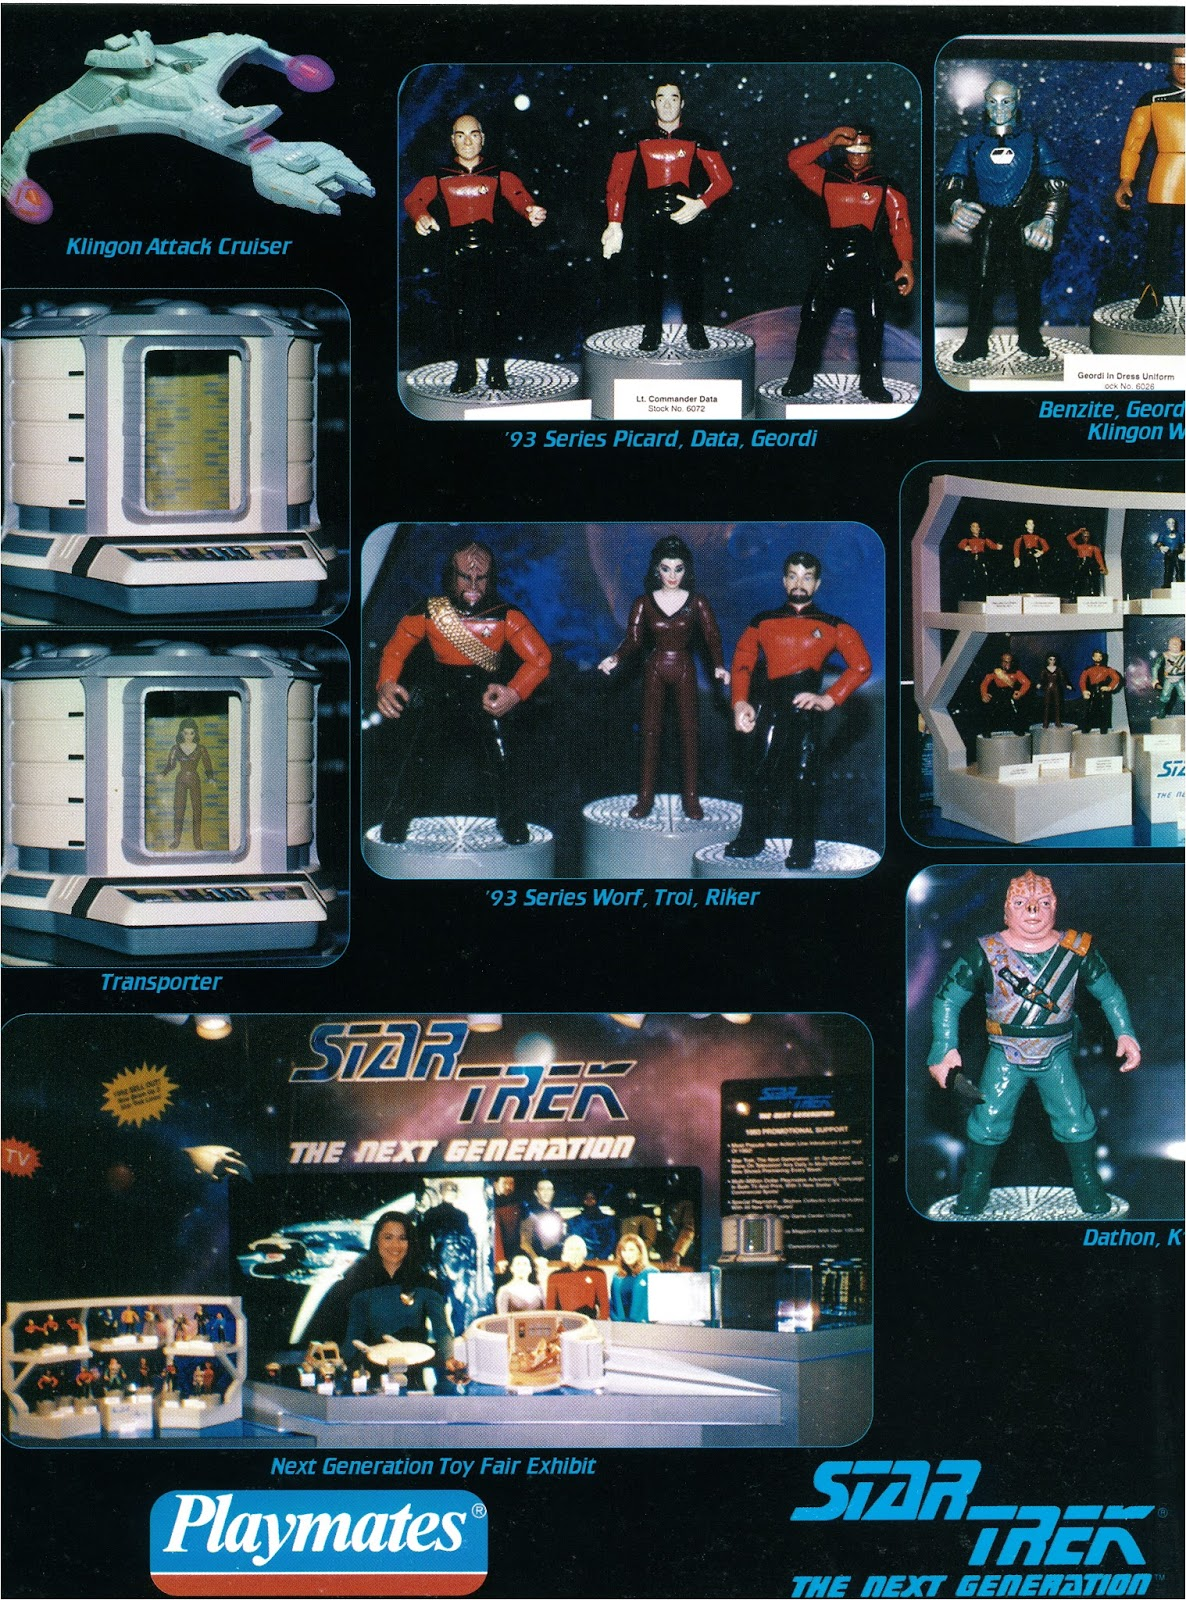 Star Trek The Next Generation Prototype Action Figure Playmates Toy Fair Playmates